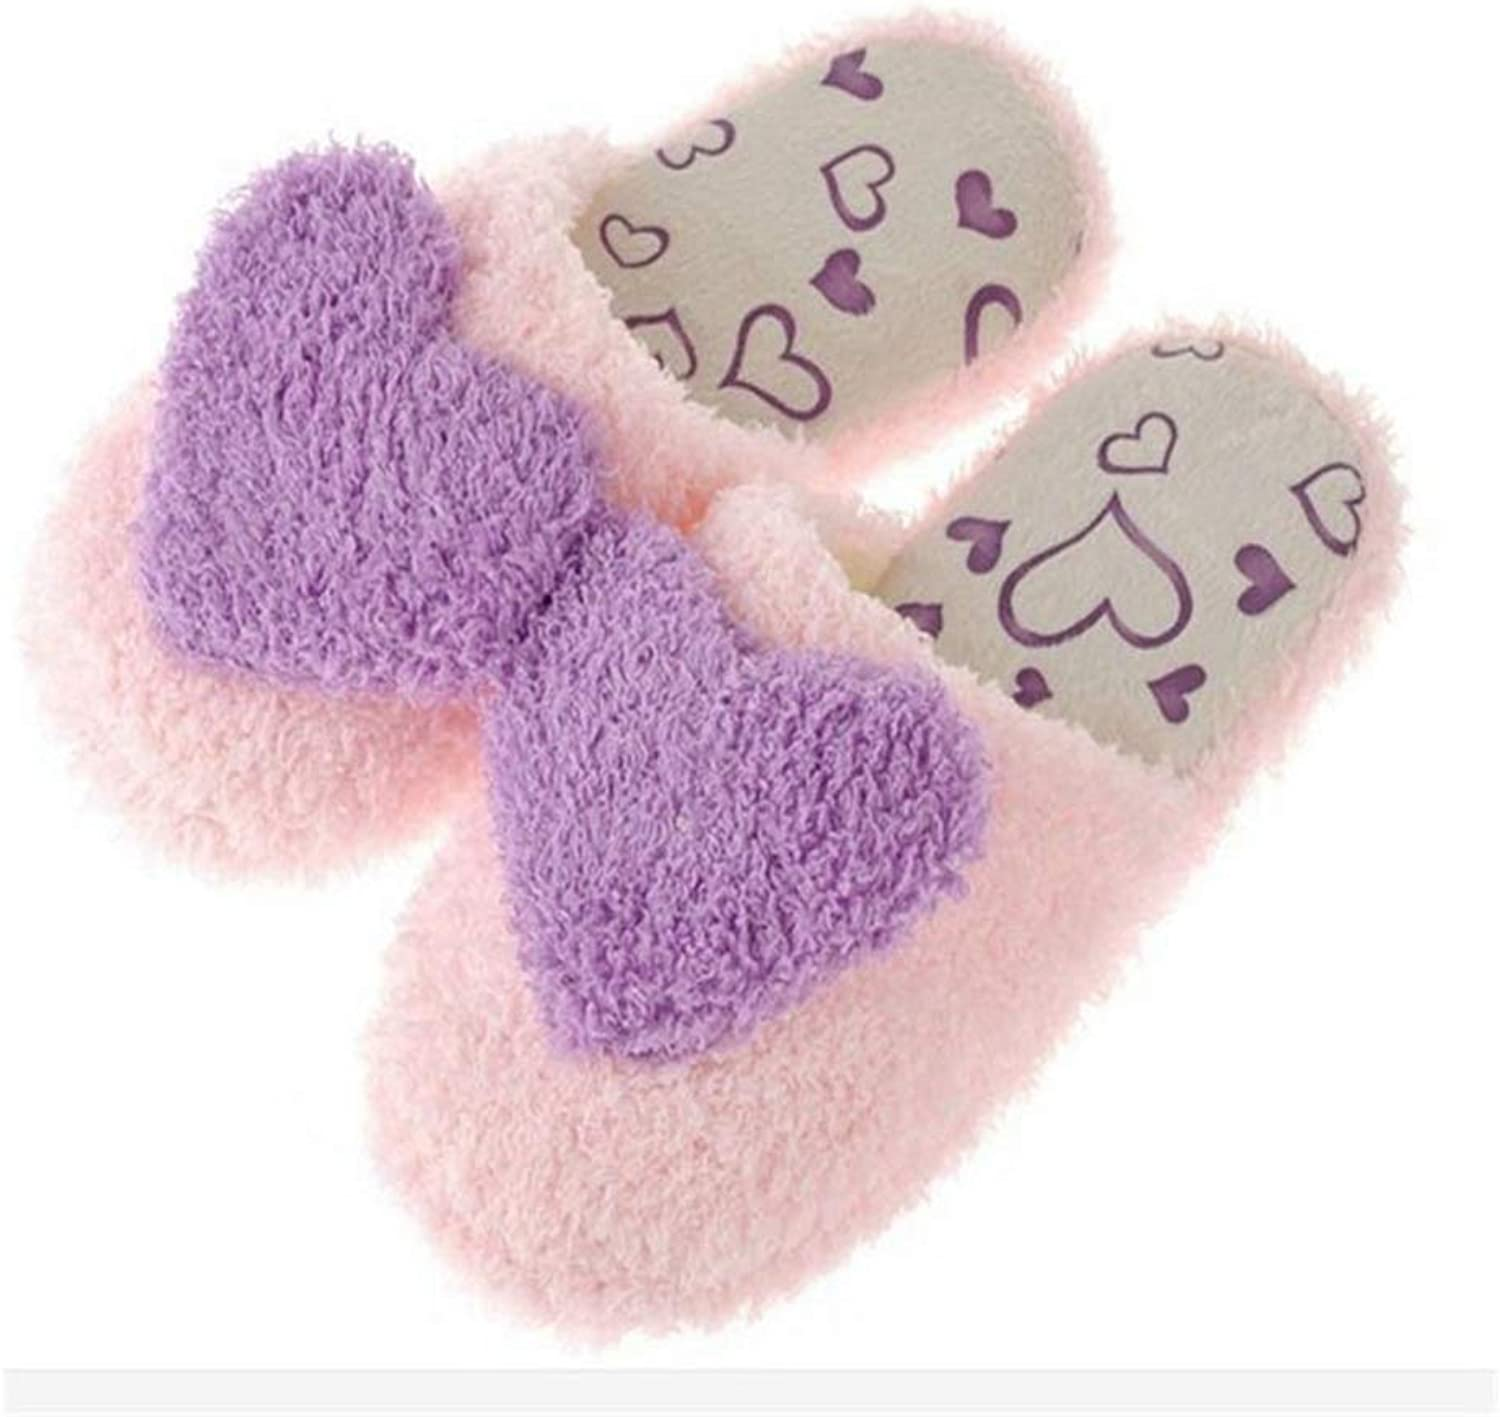 Zarbrina Winter Warm Slippers for Women Indoor shoes Heart Shaped Soft Plush Cute Design Ladies Home House Floor